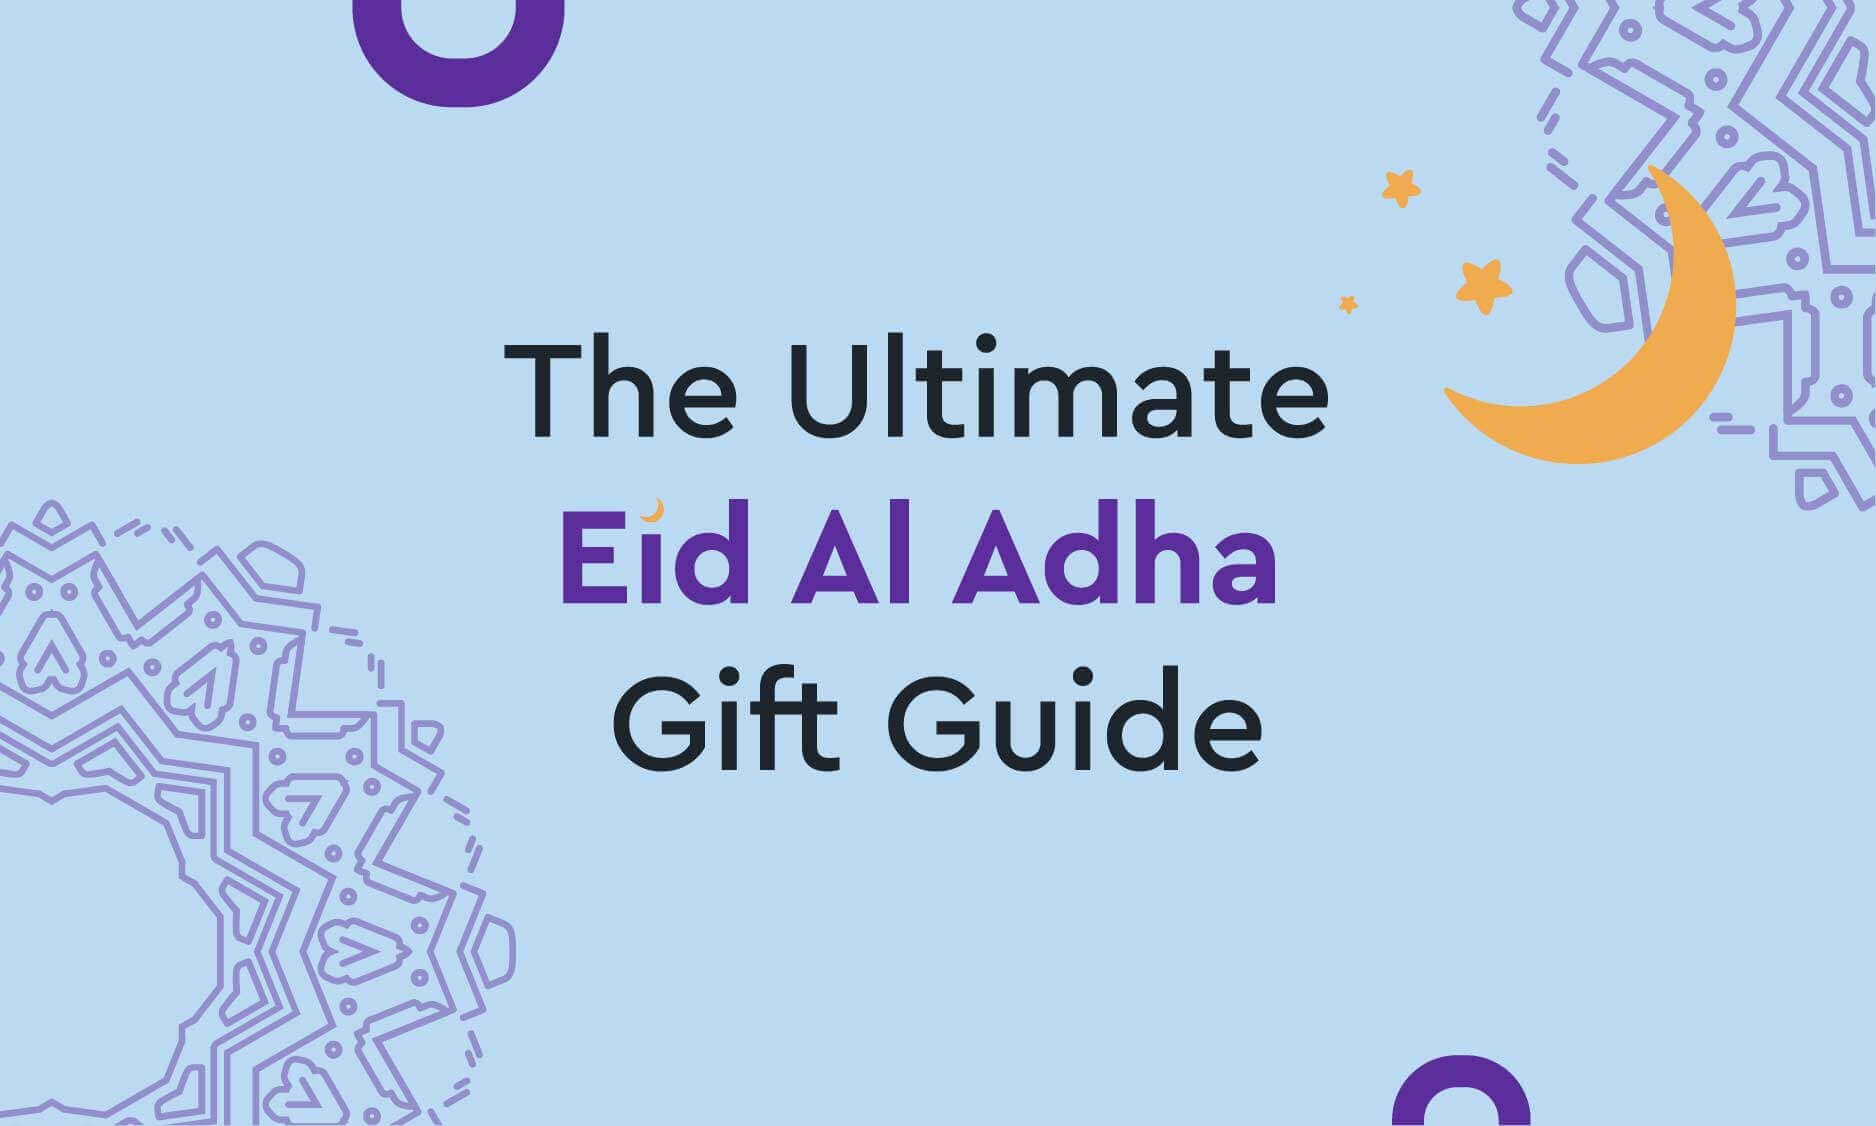 The Ultimate Eid Al Adha Gift Guide